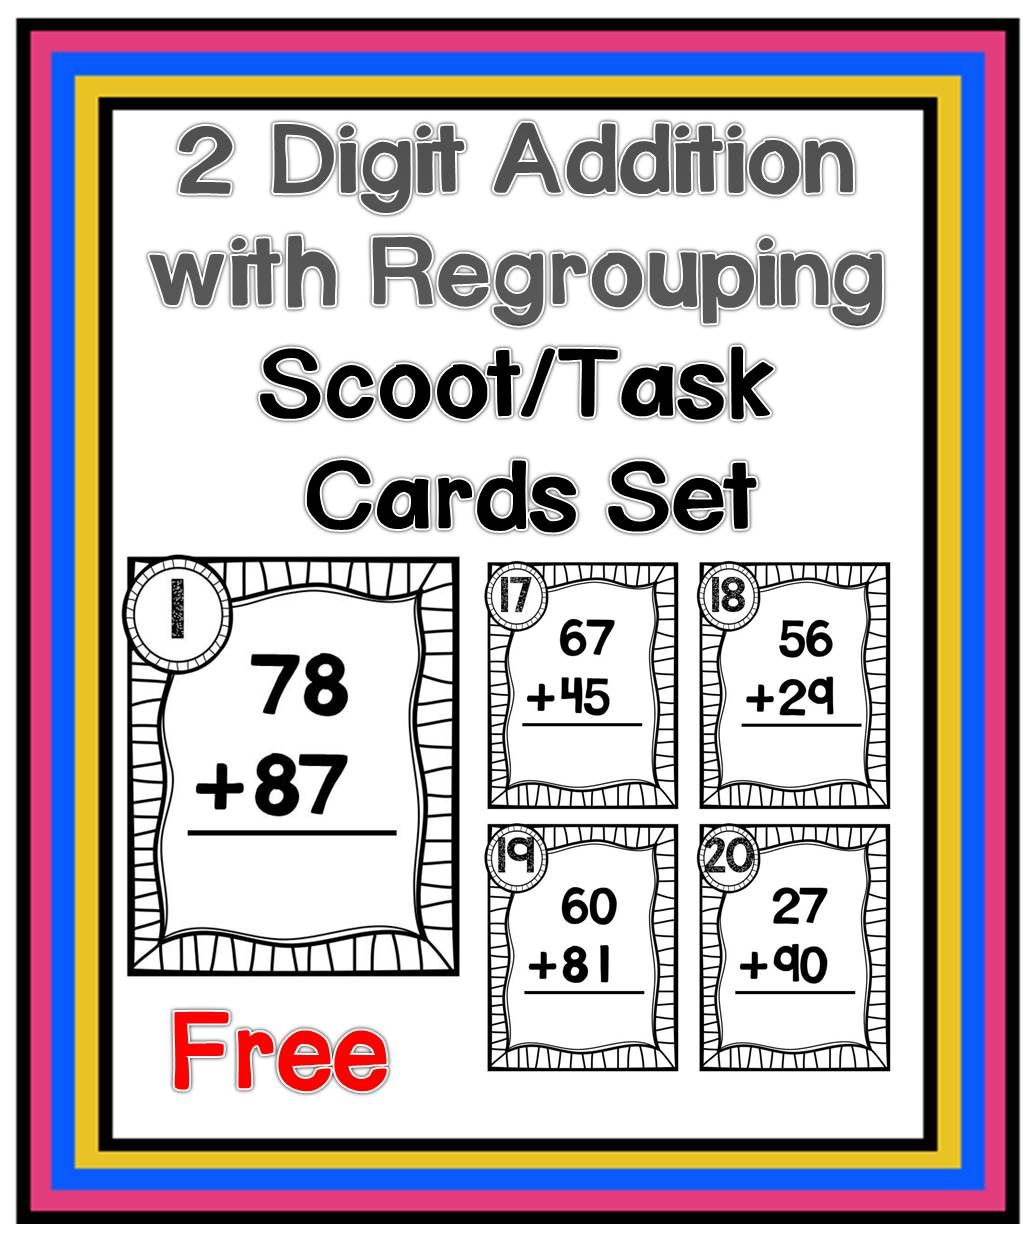 Two Digit Addition With Regrouping Scoot Task Cards Set